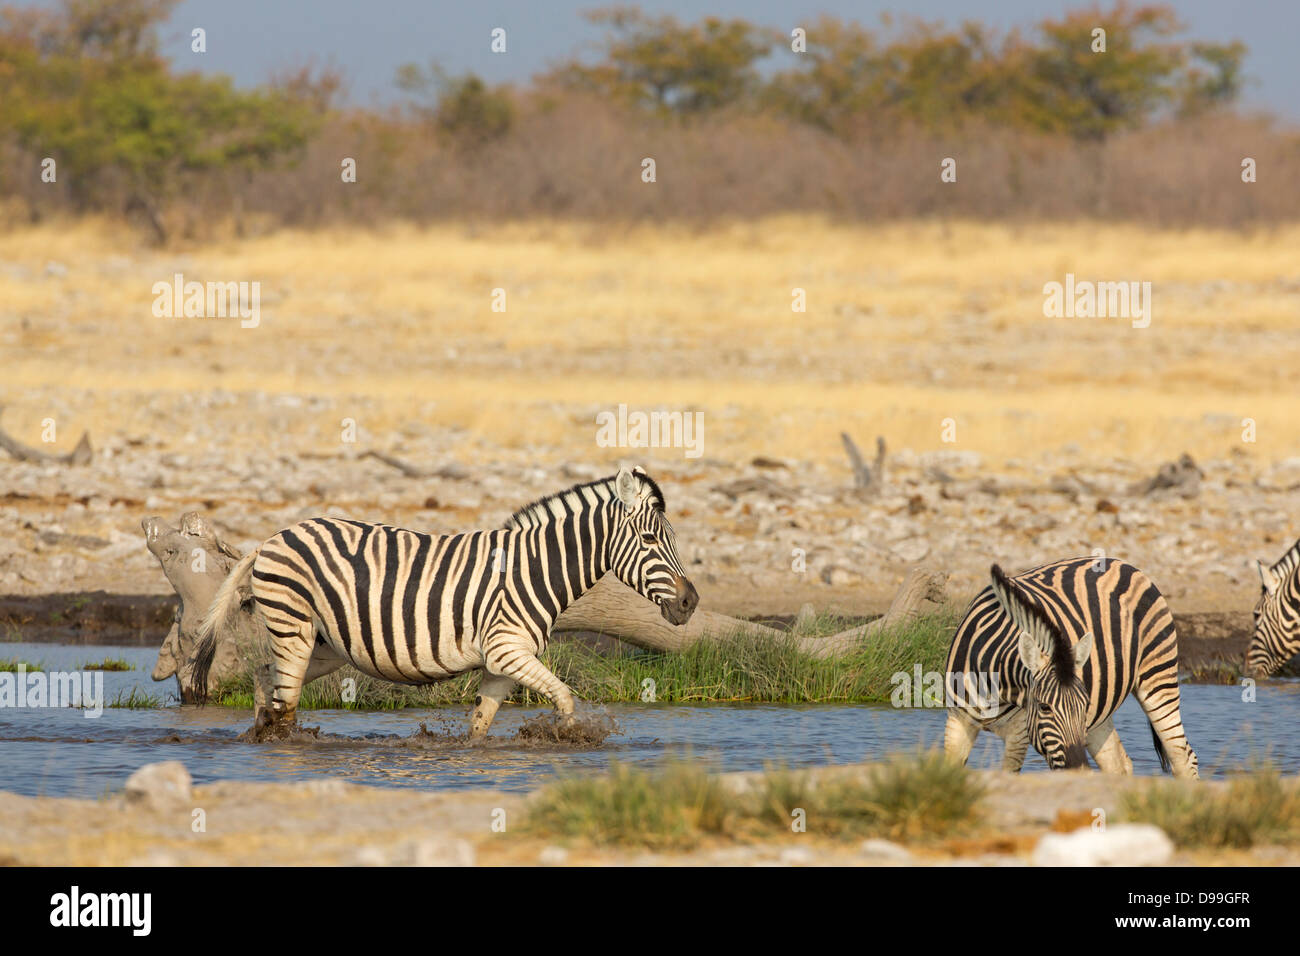 plains zebra, common zebra, Burchell's zebra, Equus quagga, plains zebra, common zebra, Burchell's zebra, - Stock Image